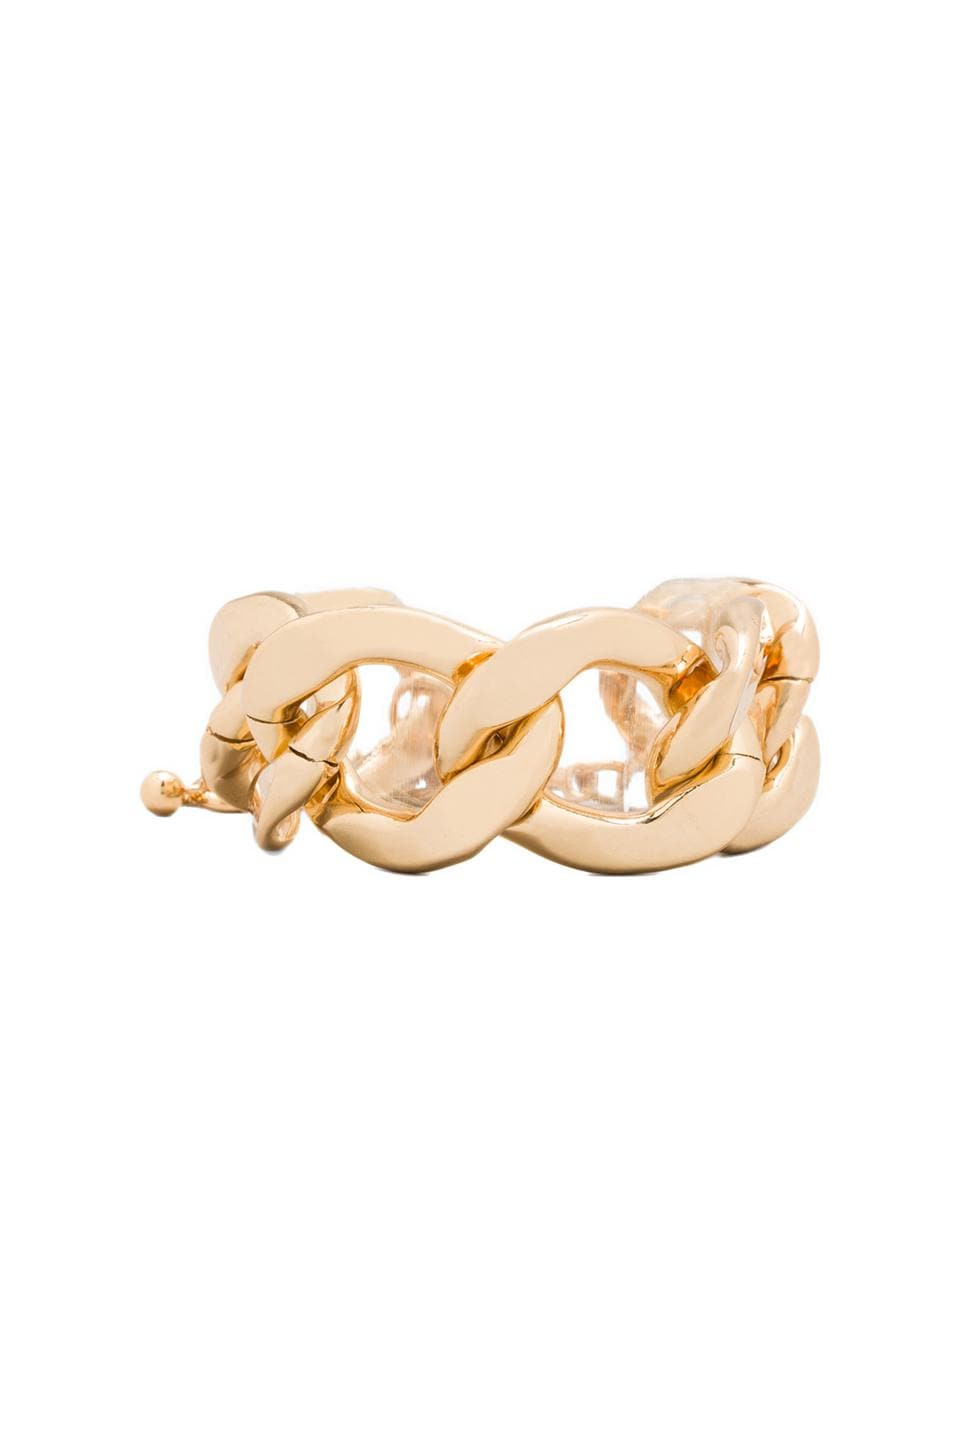 Kenneth Jay Lane Large Flat Link Lobster Claw Clasp Bracelet in Polished Gold